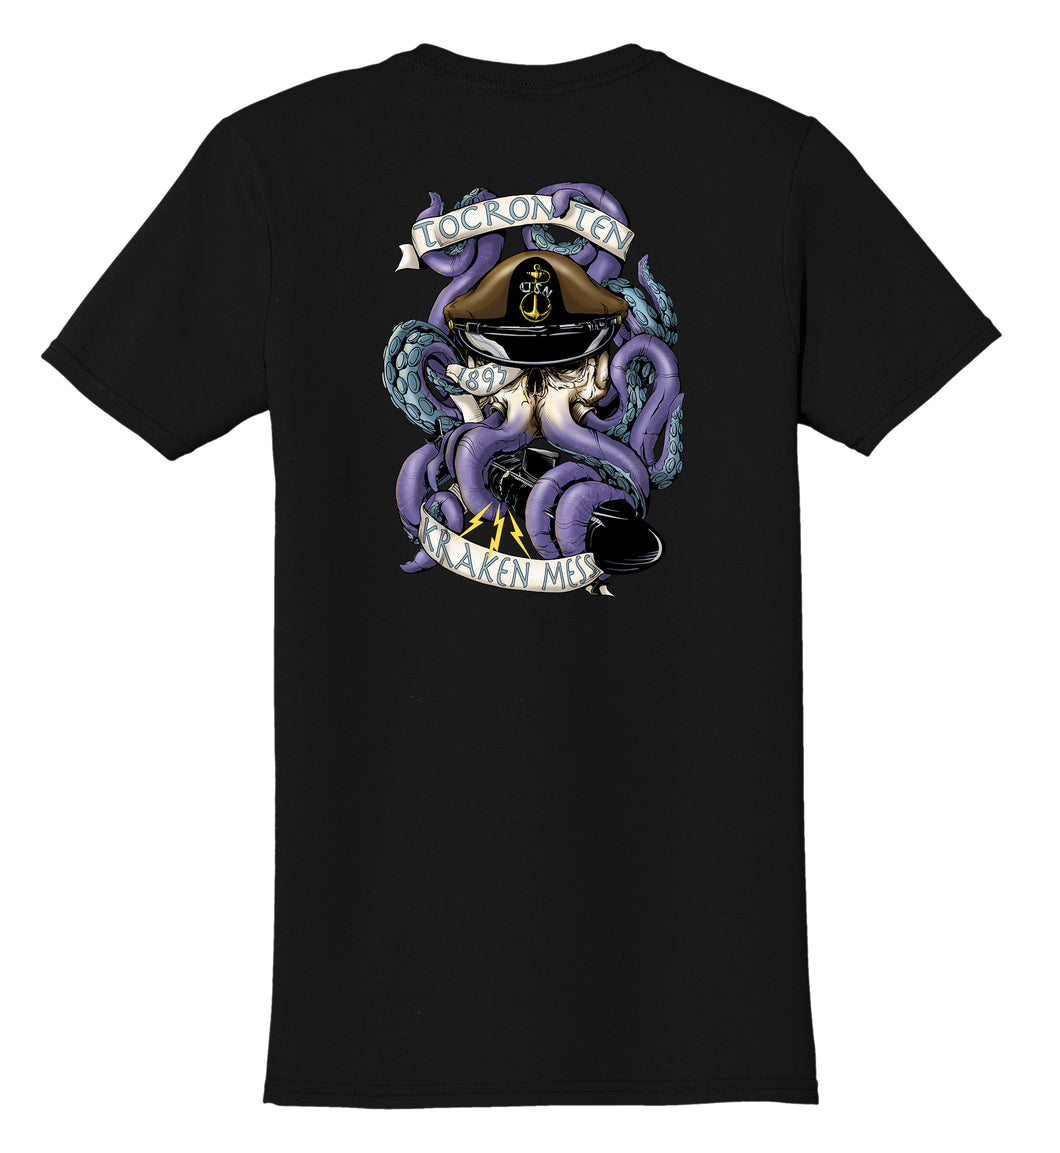 TOCRON TEN CPO Mess T-shirt